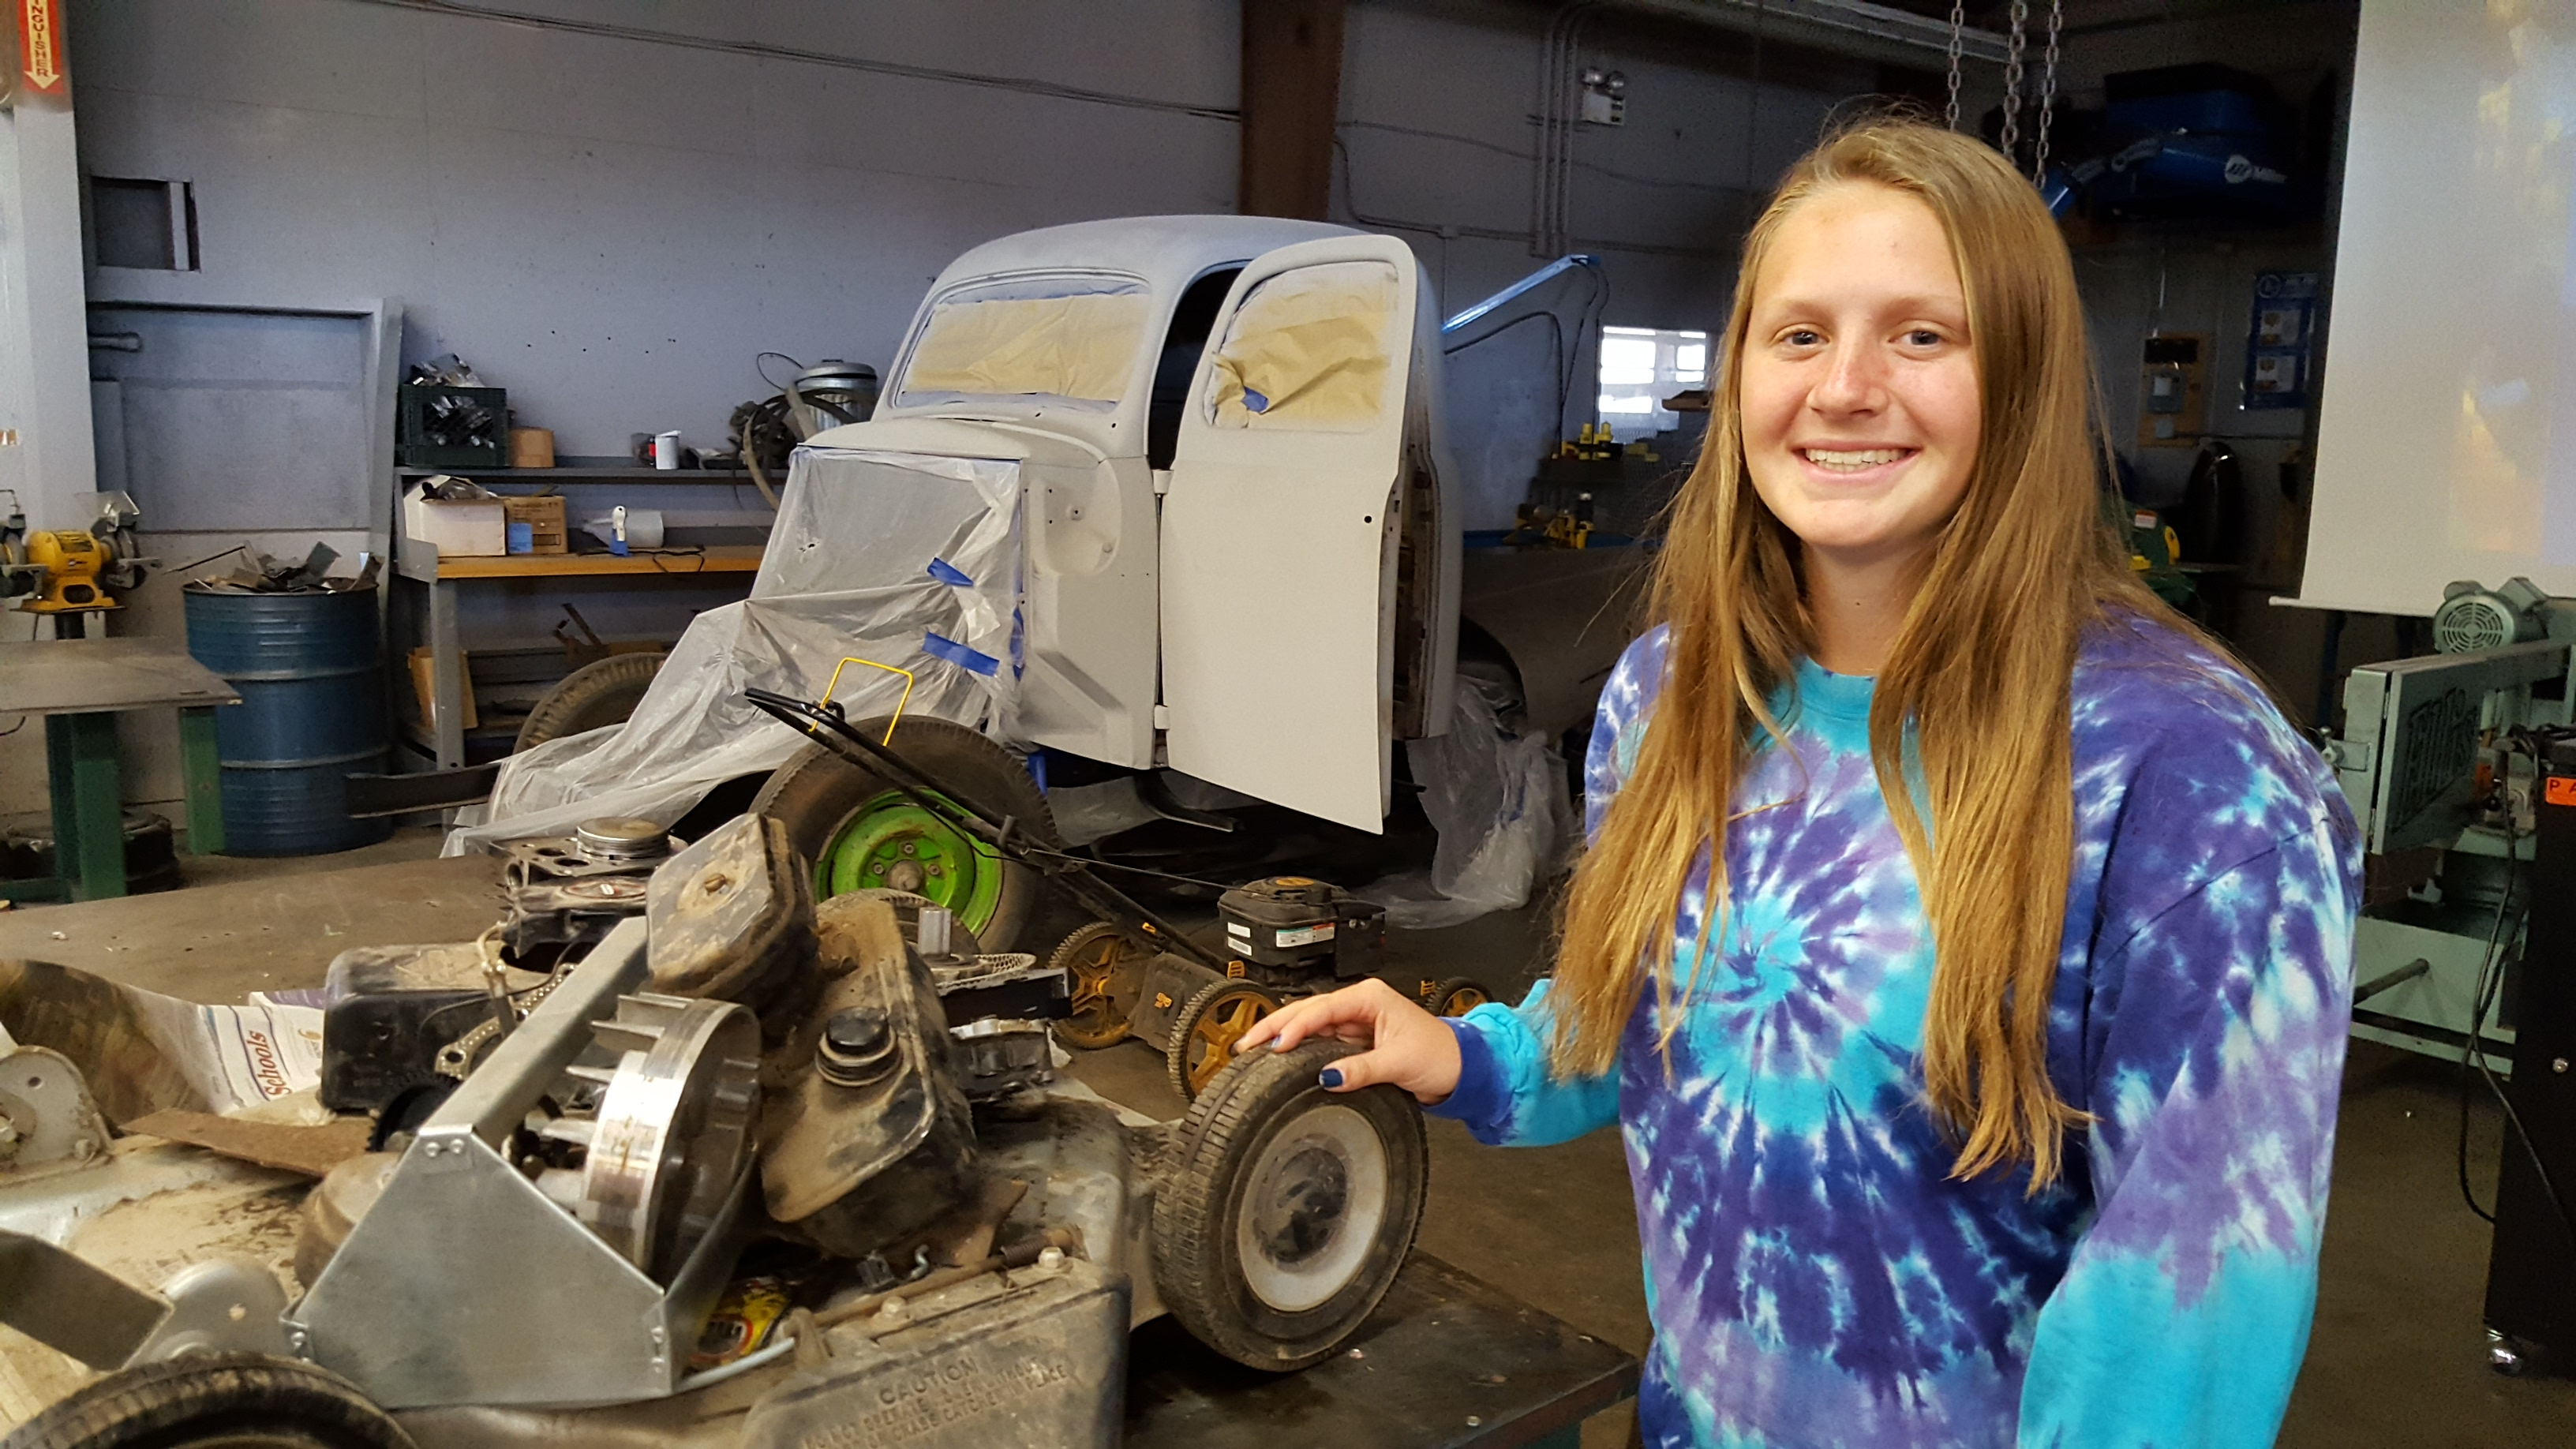 Student stands next to lawn mower in SVHS Power Mechanics class